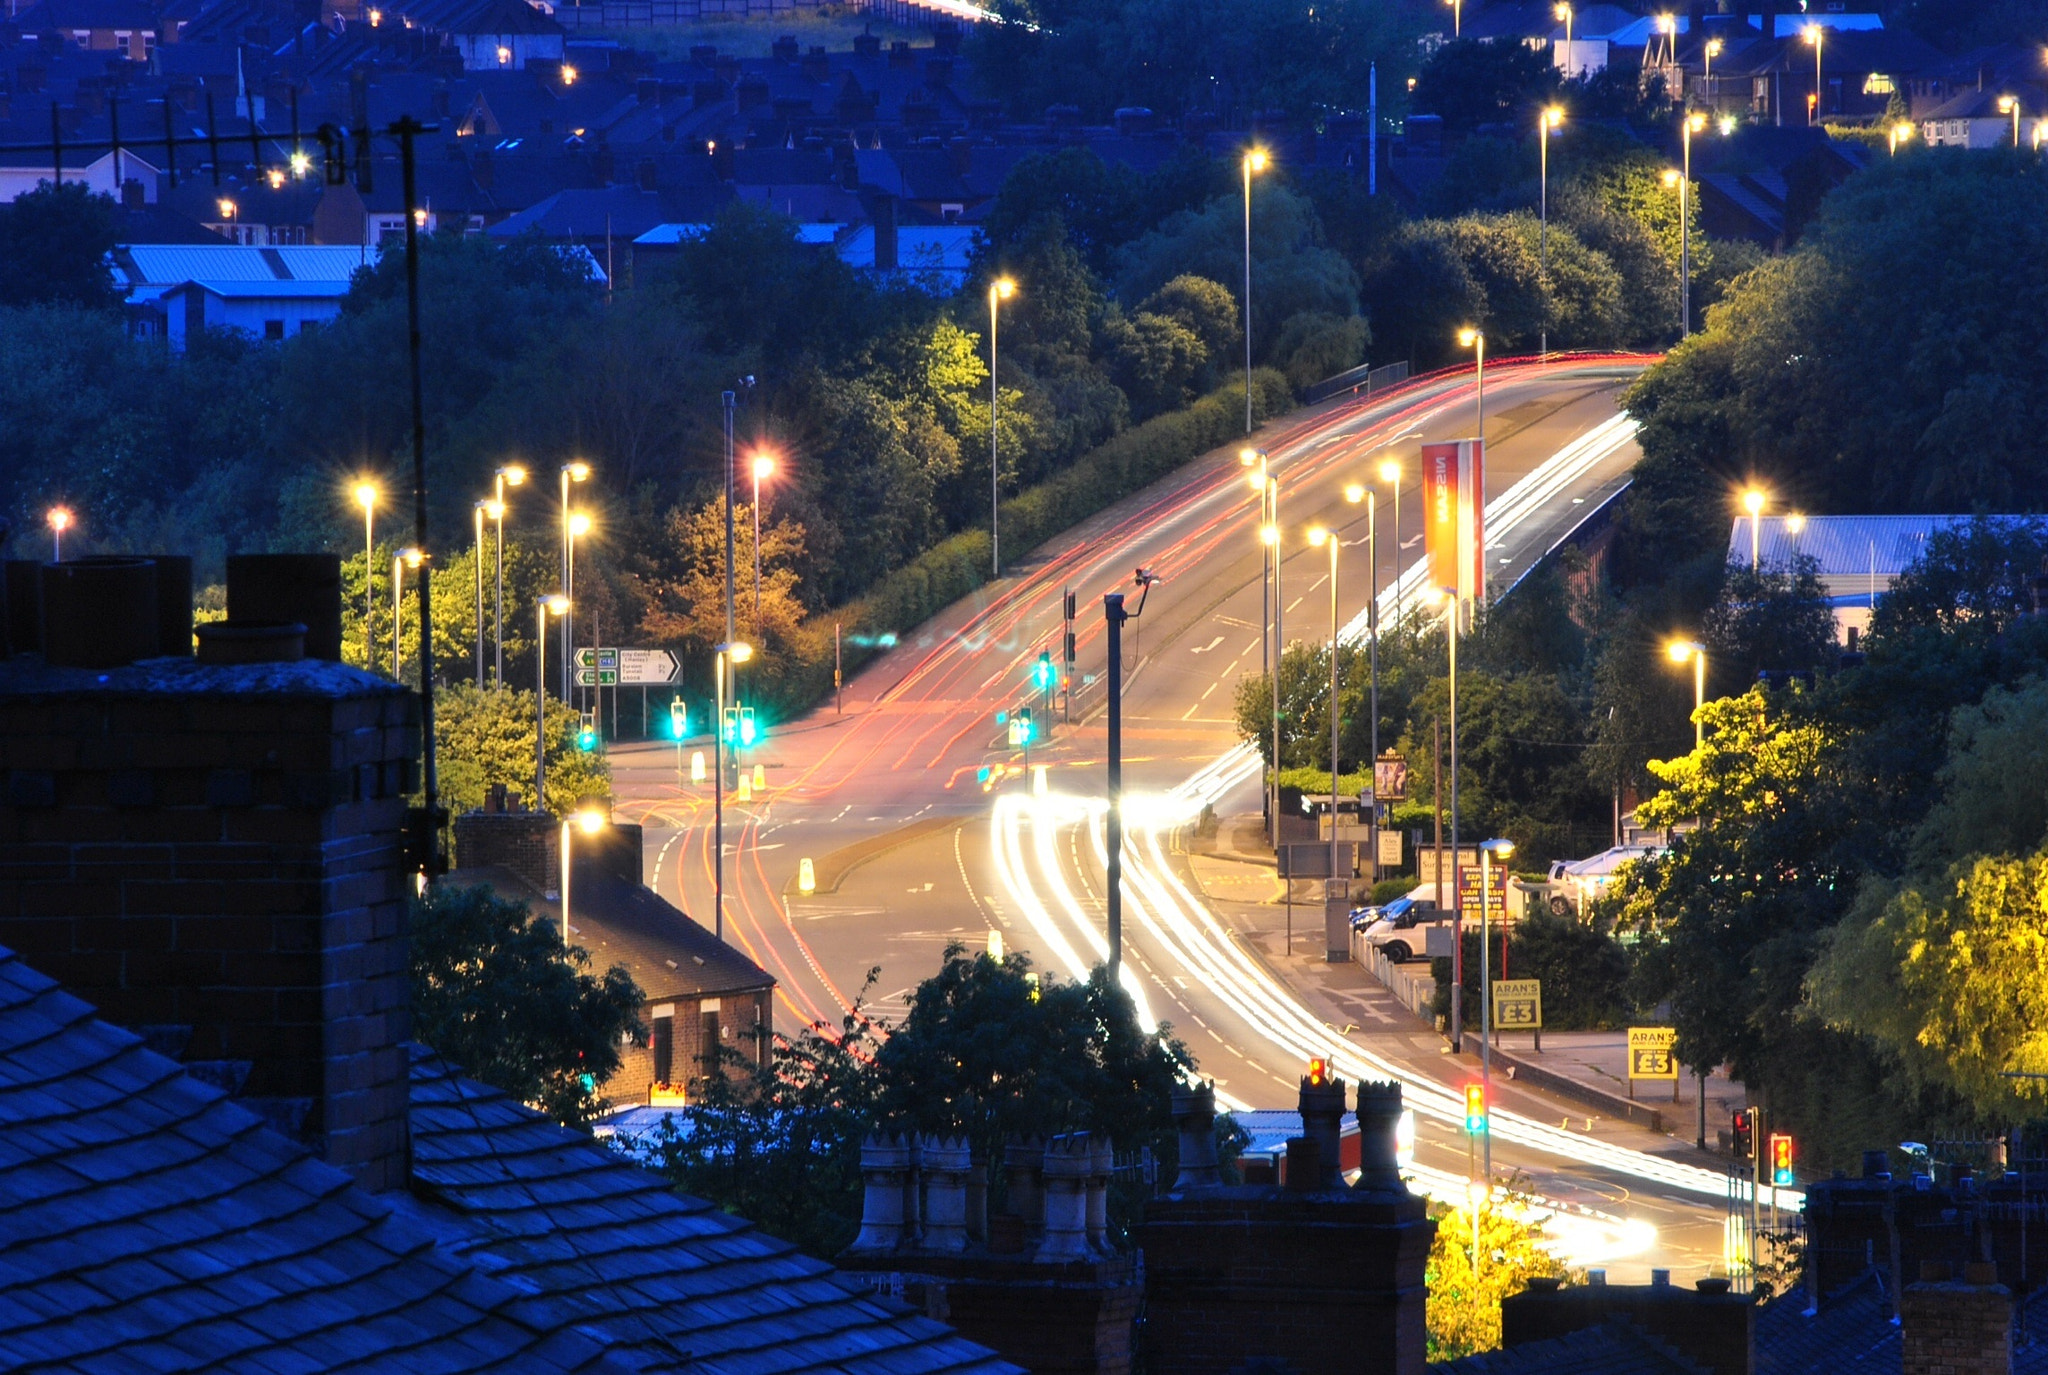 Photograph Light streams in the Potteries by Glen Manby on 500px